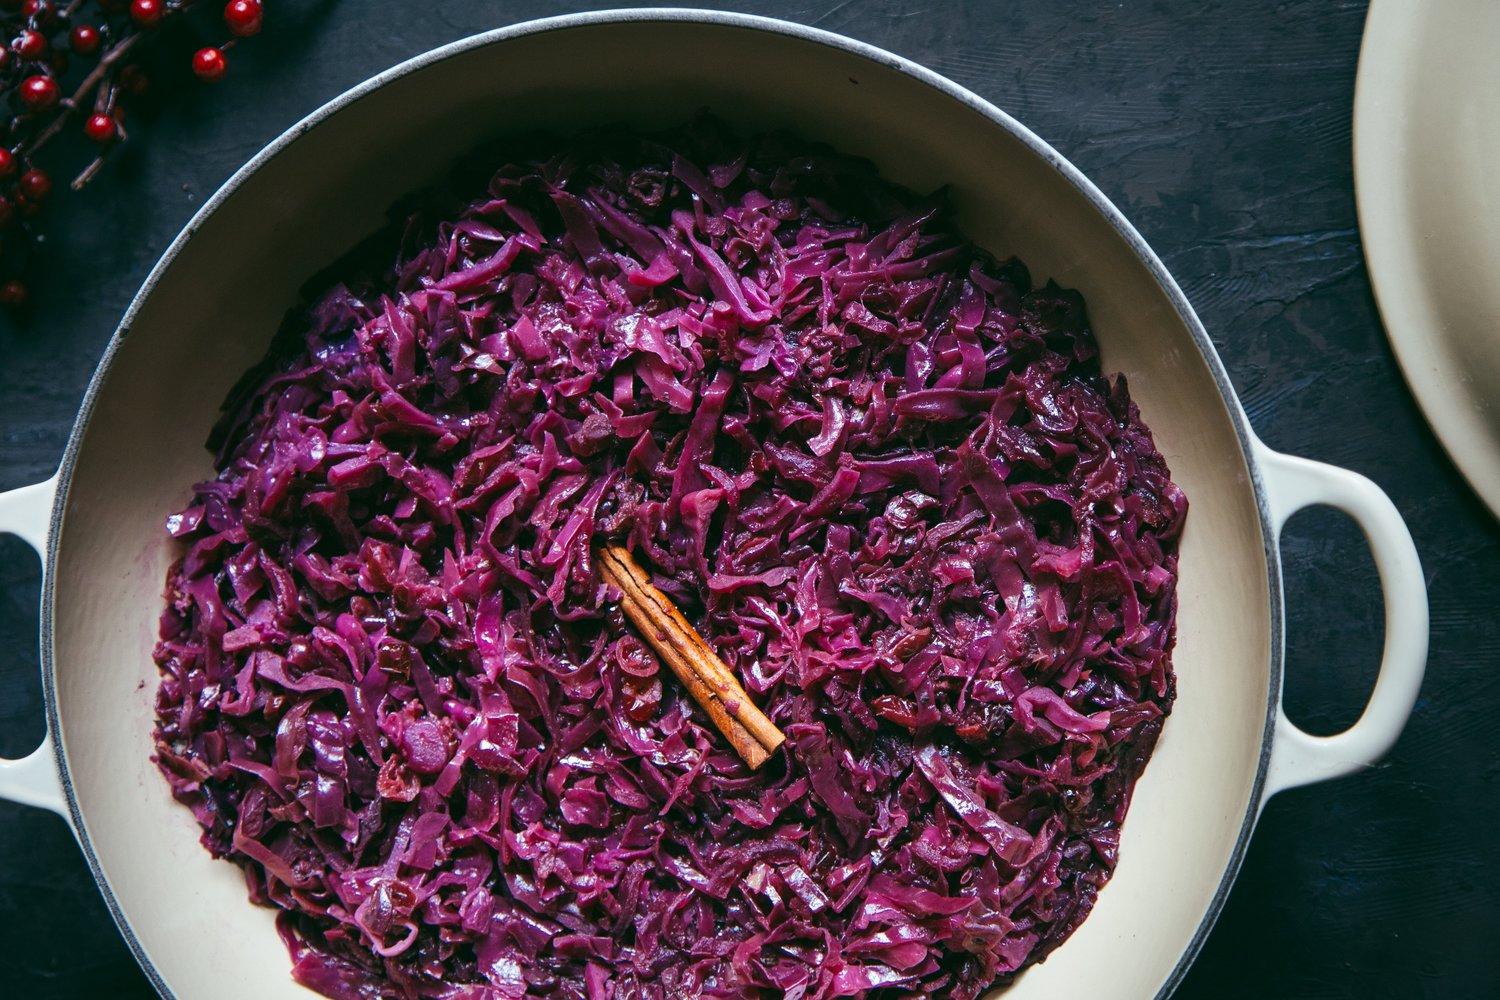 braised+cabbage+rough+edit+preview-2.jpg